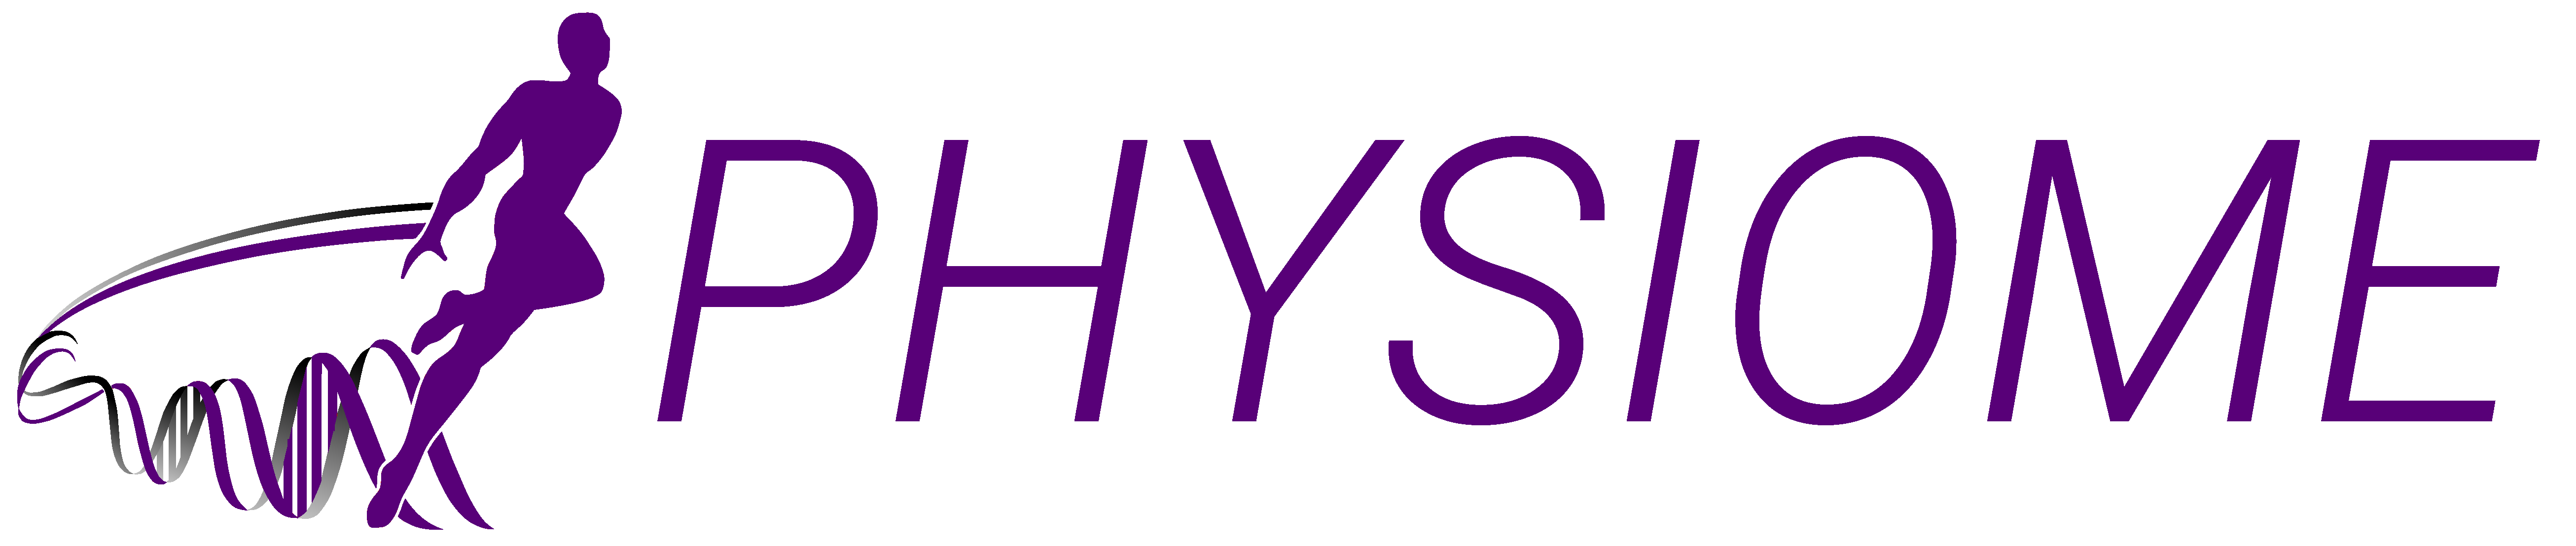 Physiome logo